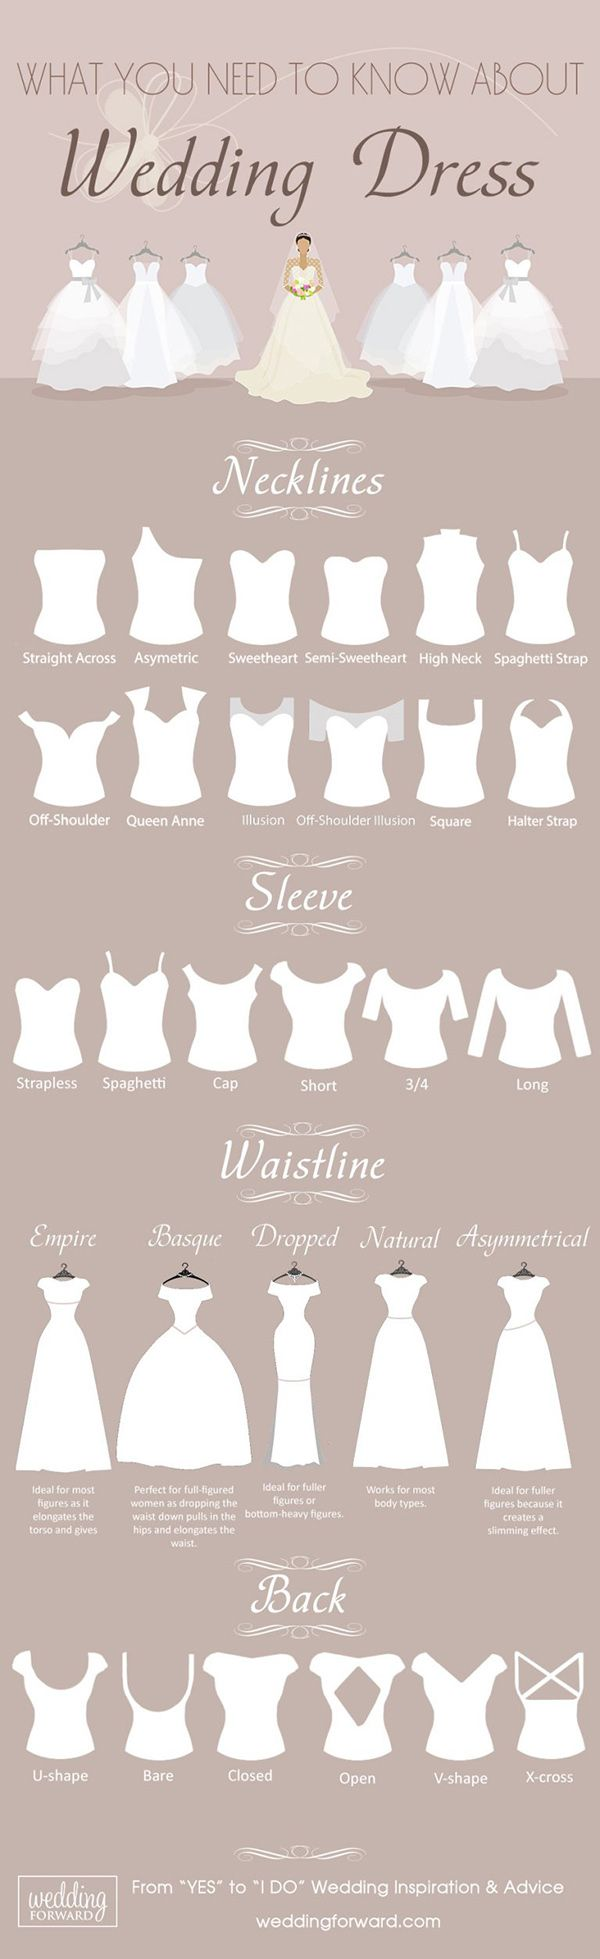 guide to choose the perfect wedding dress for brides